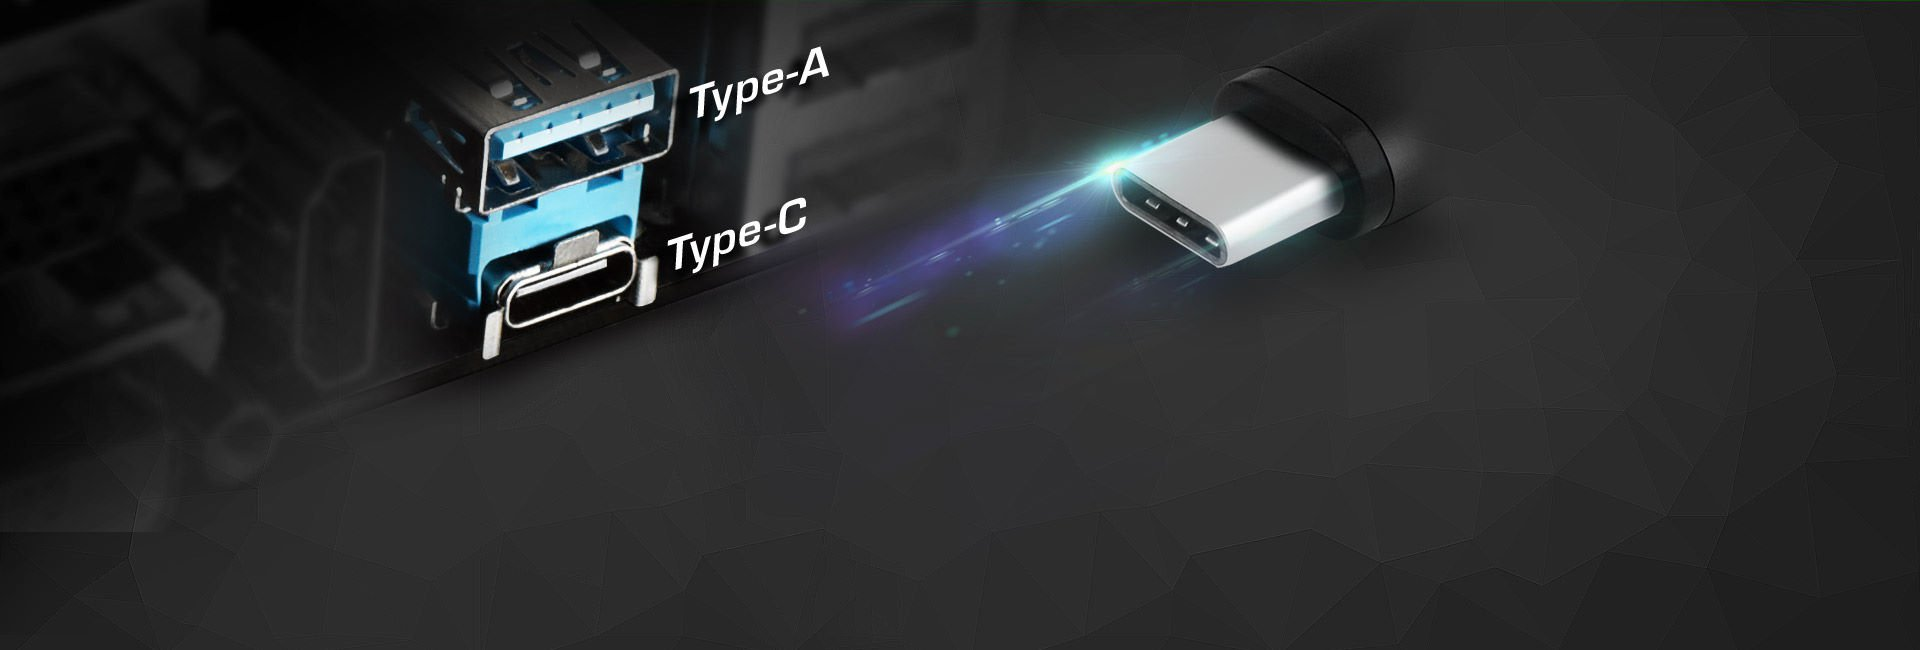 hight resolution of a latest reversible usb type c design that fits the connector either way